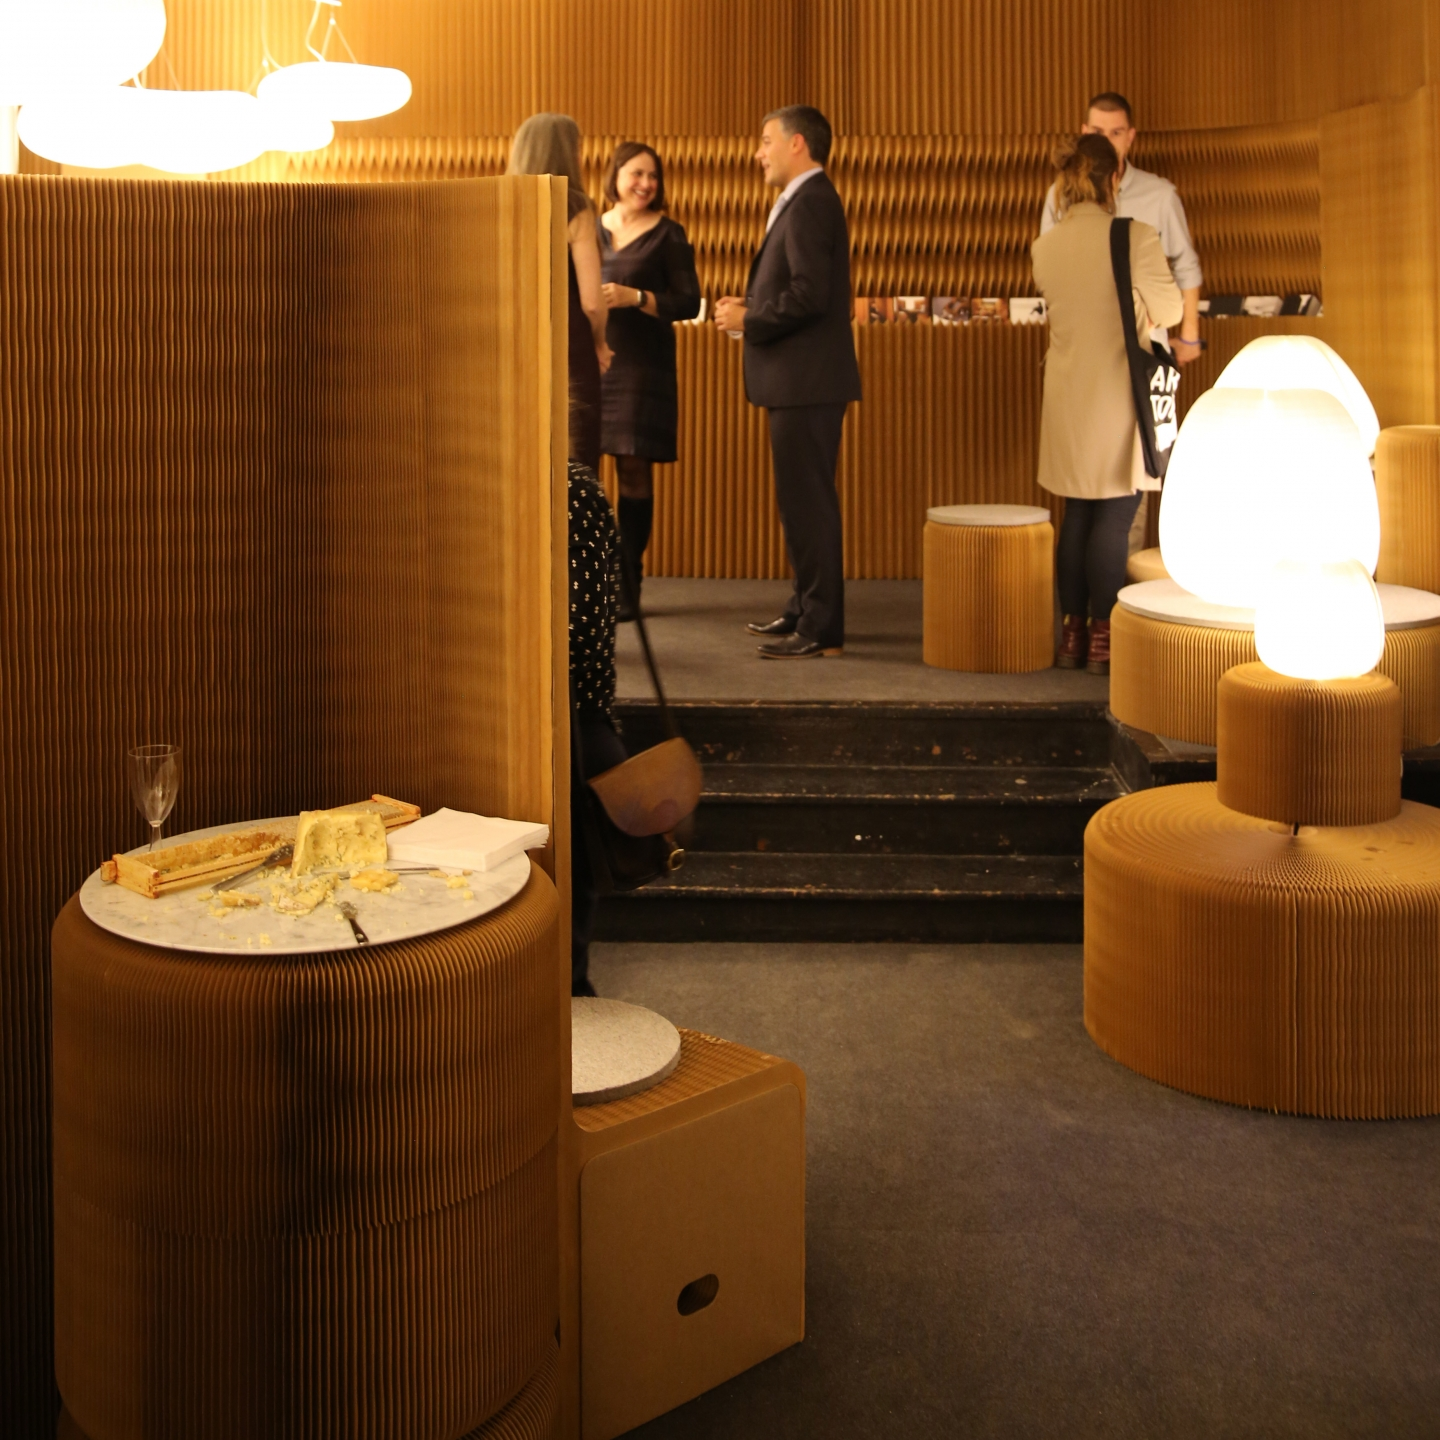 molo's installation at Design Junction London featured cloud mobiles, softwall + softblock as well as softseating and urchin softlight